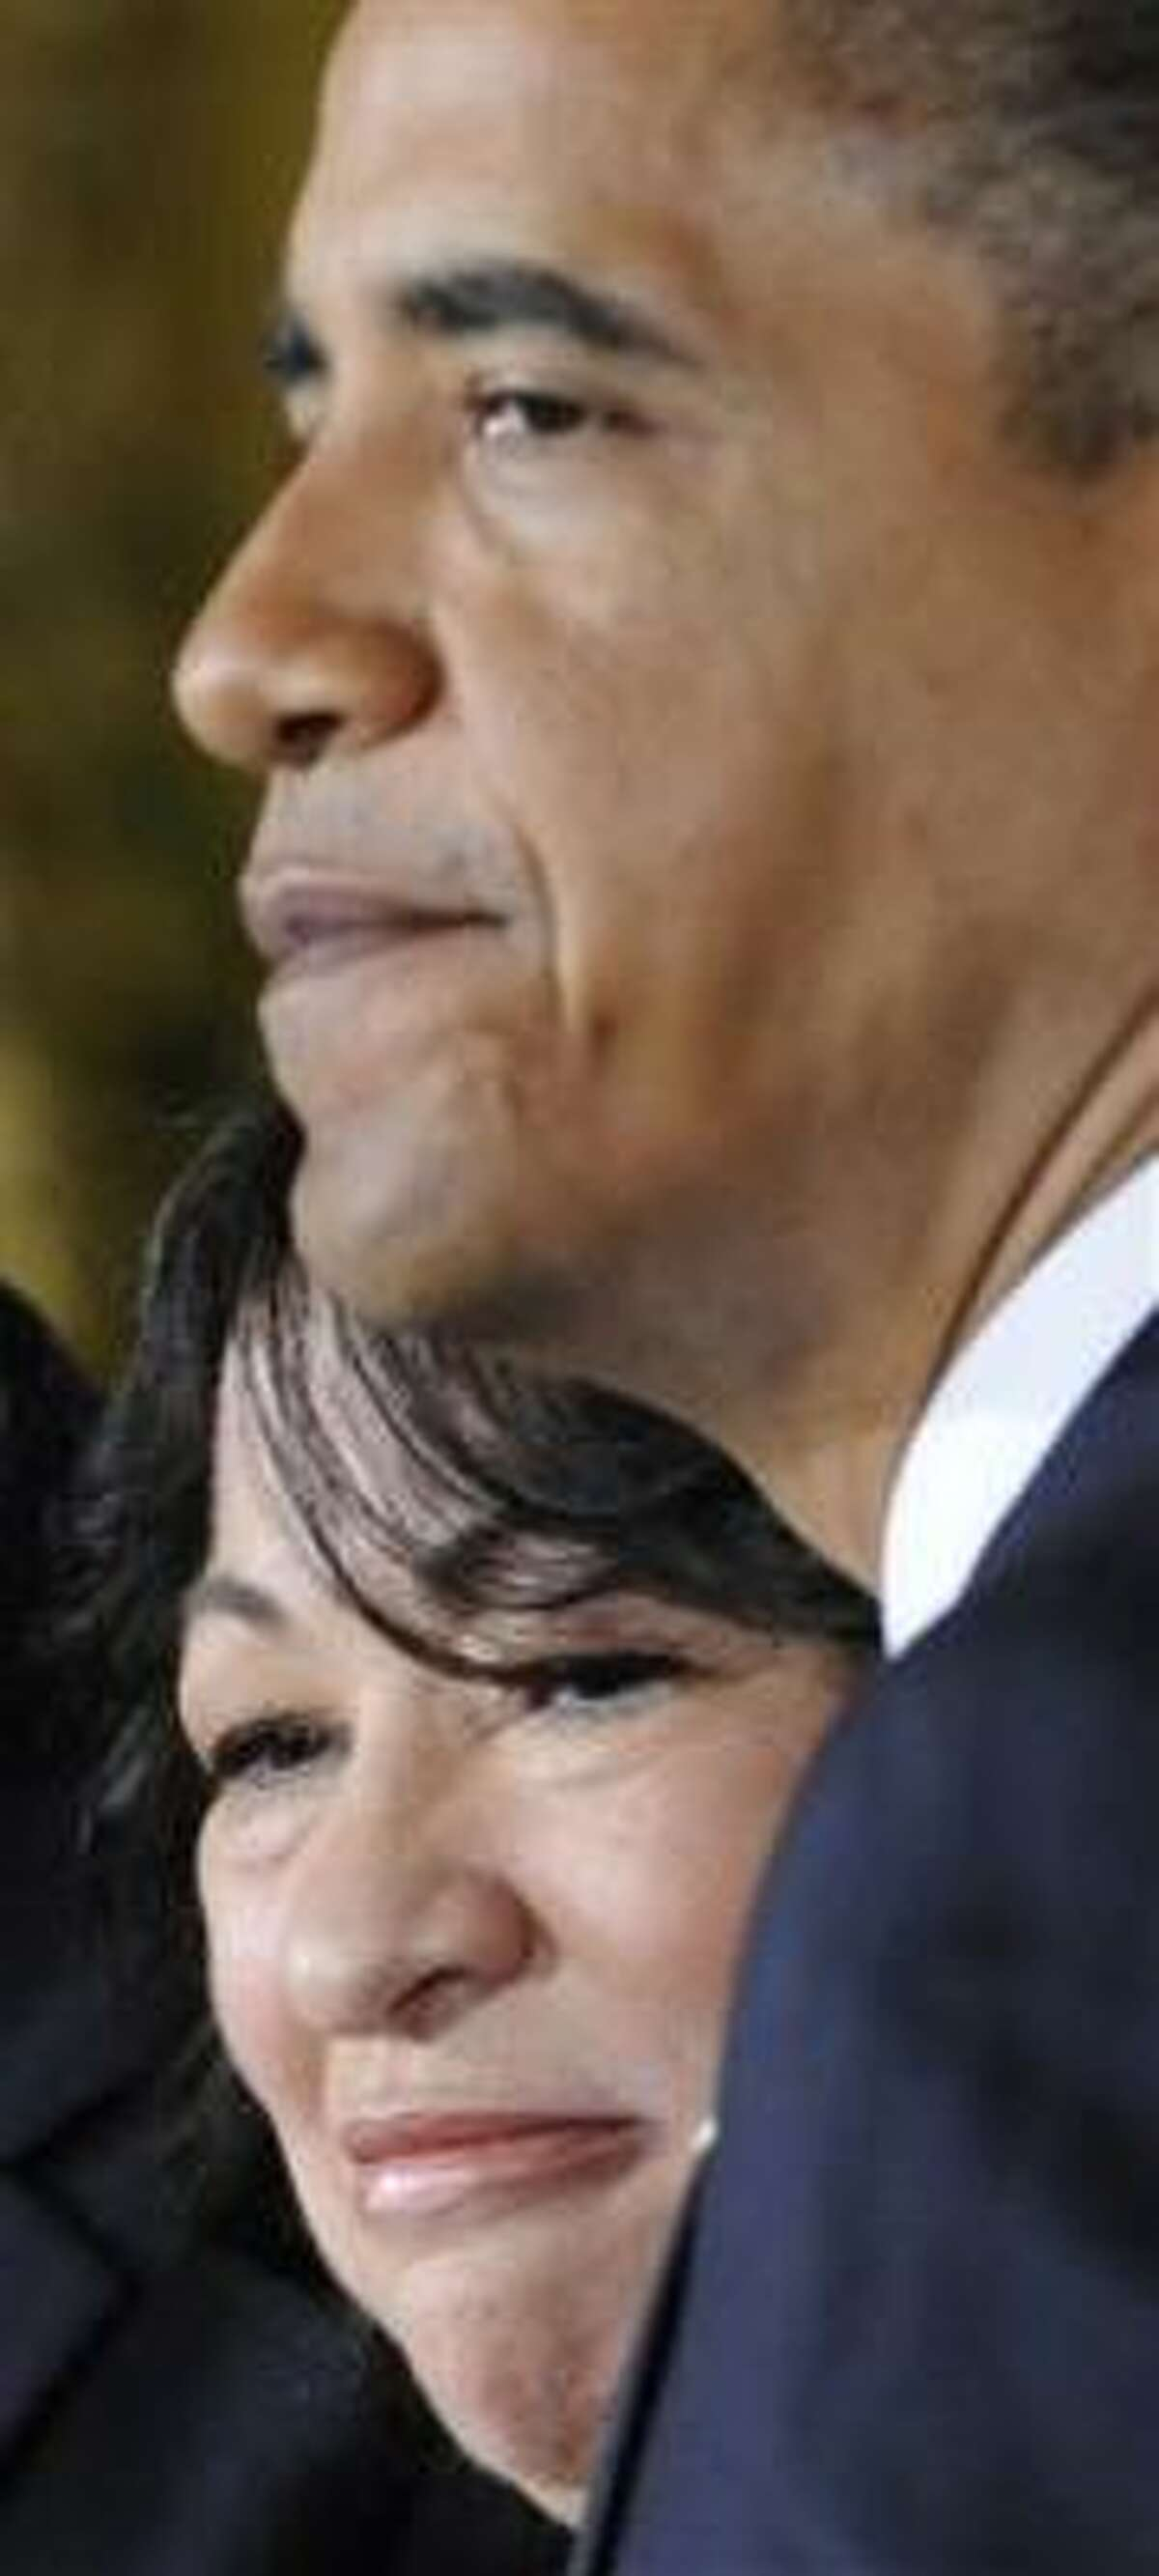 Sonia Sotomayor has been nominated for the vacancy.